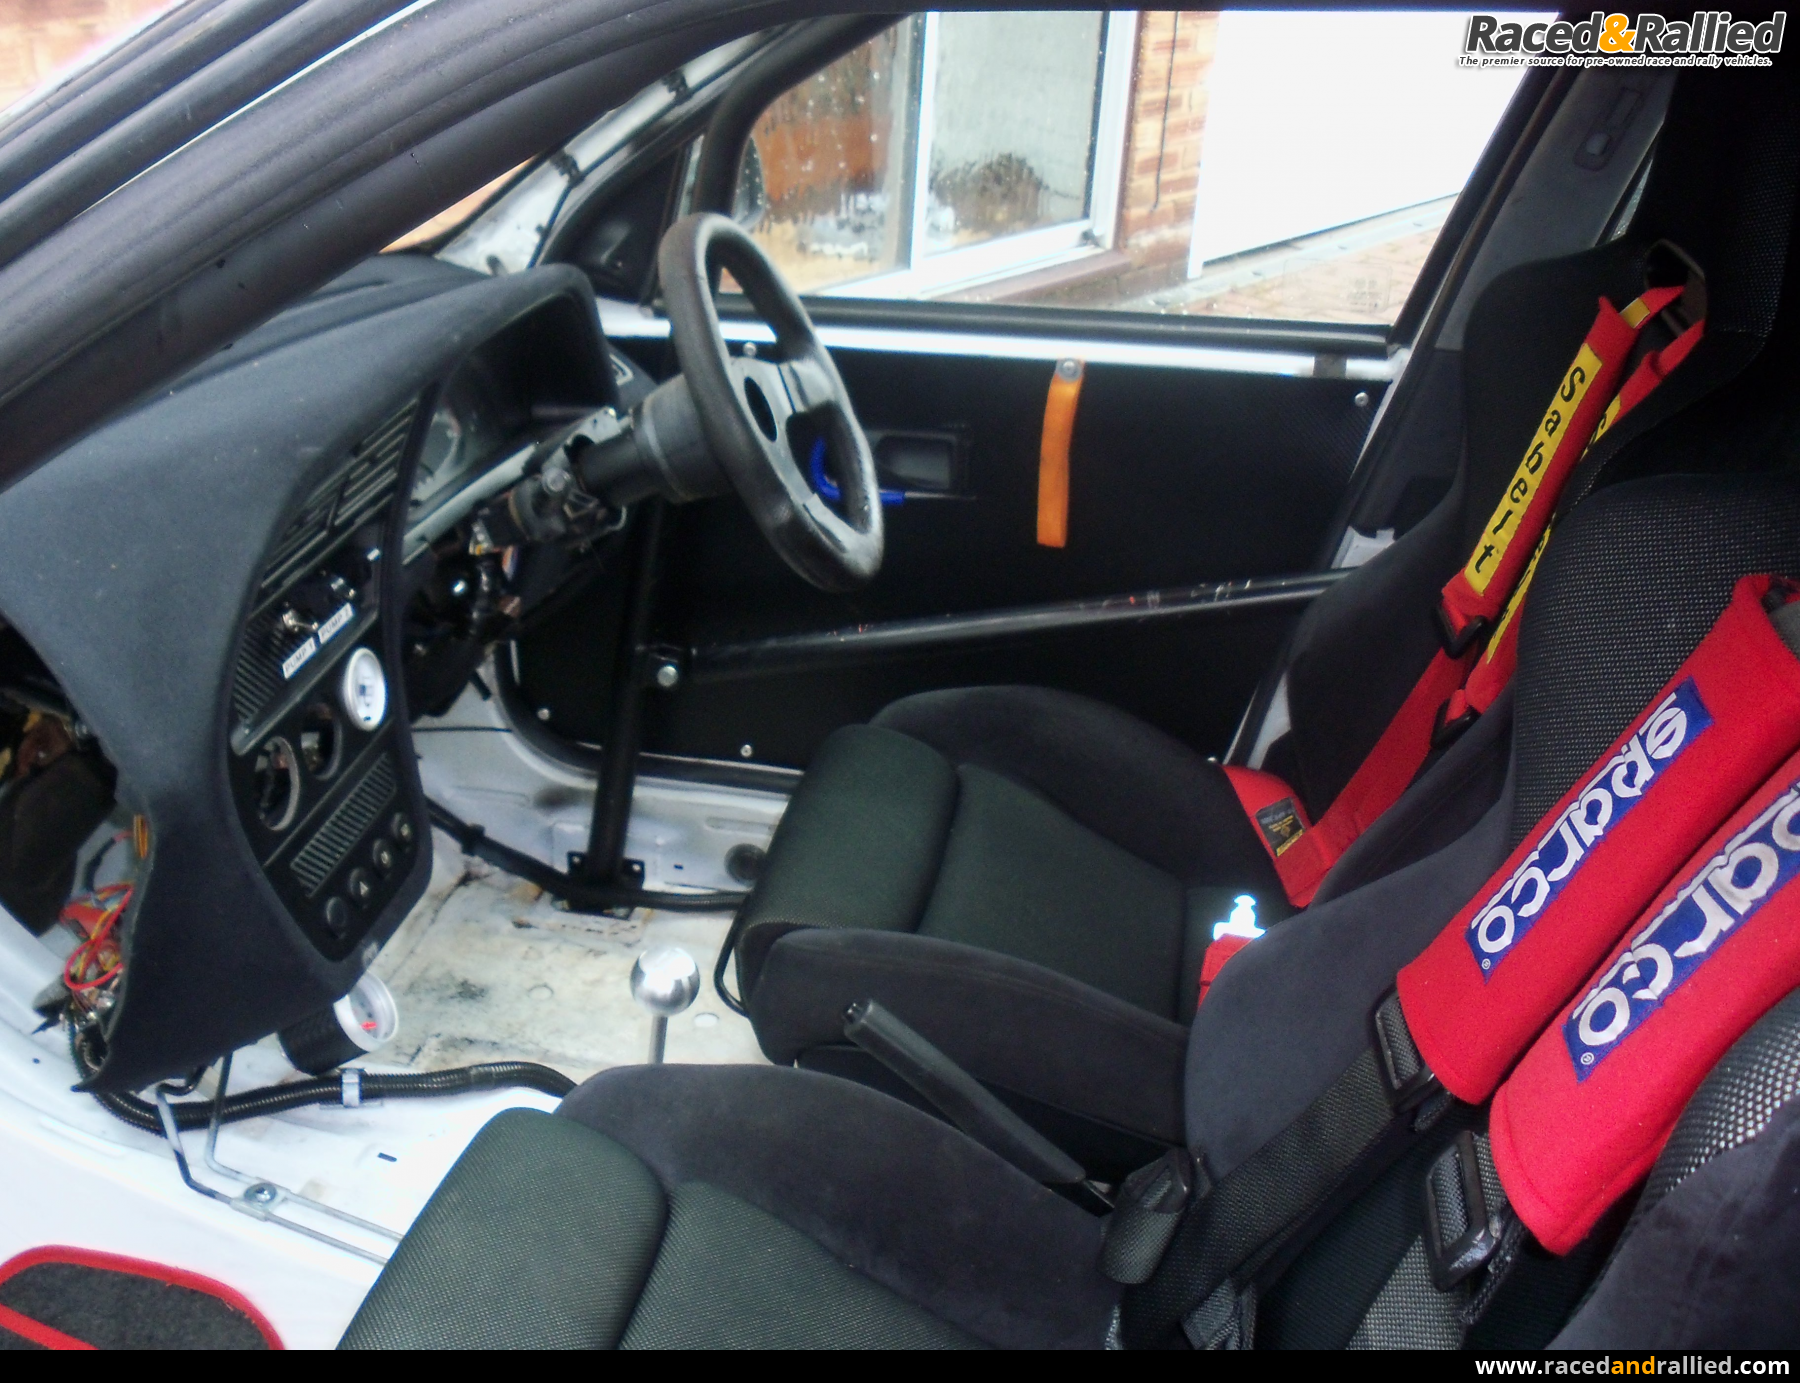 track day car peugeot 306 2.0 TURBO. | Performance & Trackday Cars ...